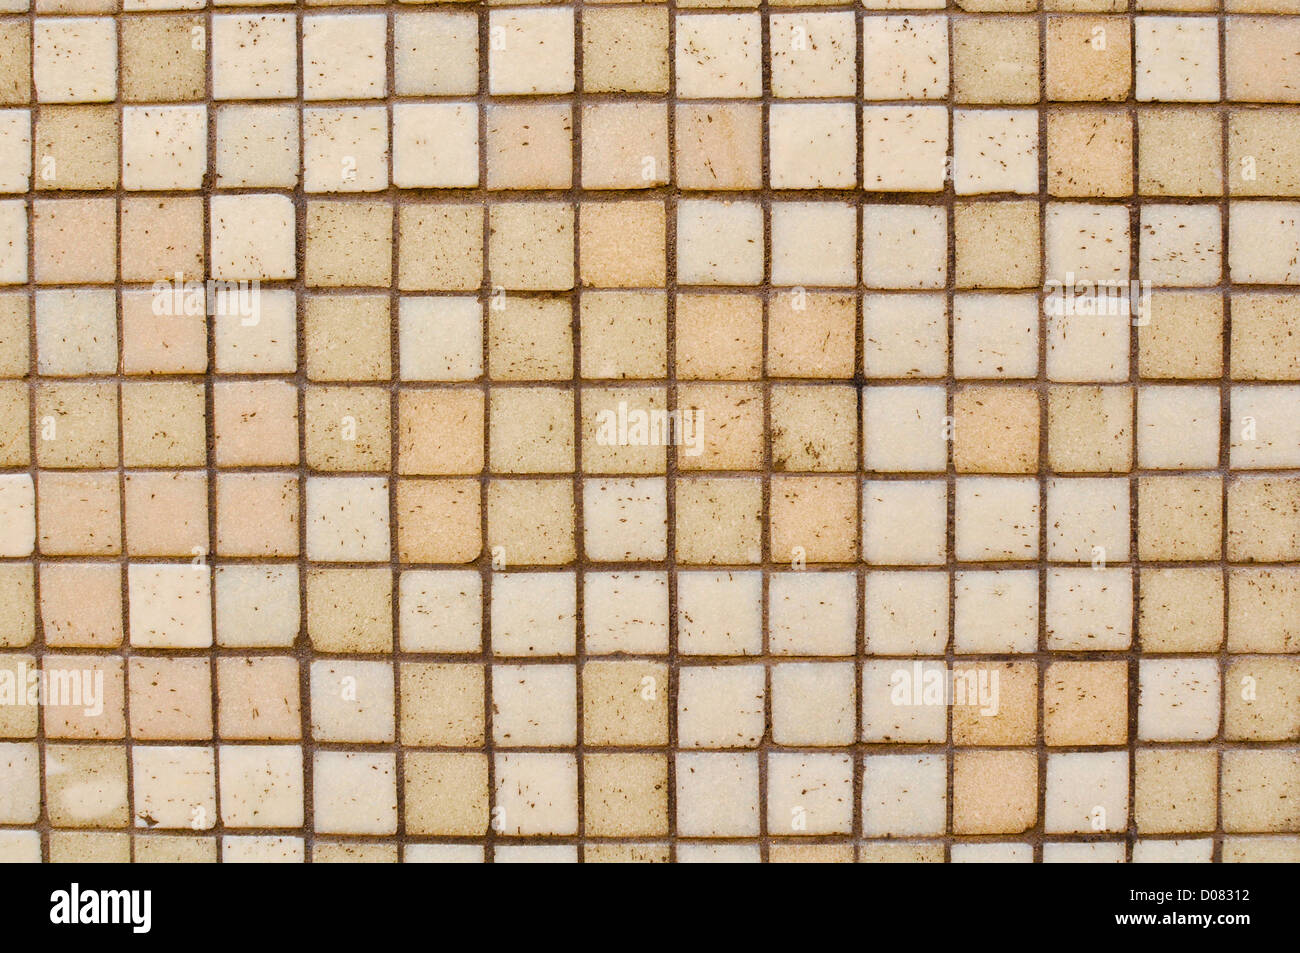 Brown Tan Mosaic Tile Background that can have text added - Stock Image